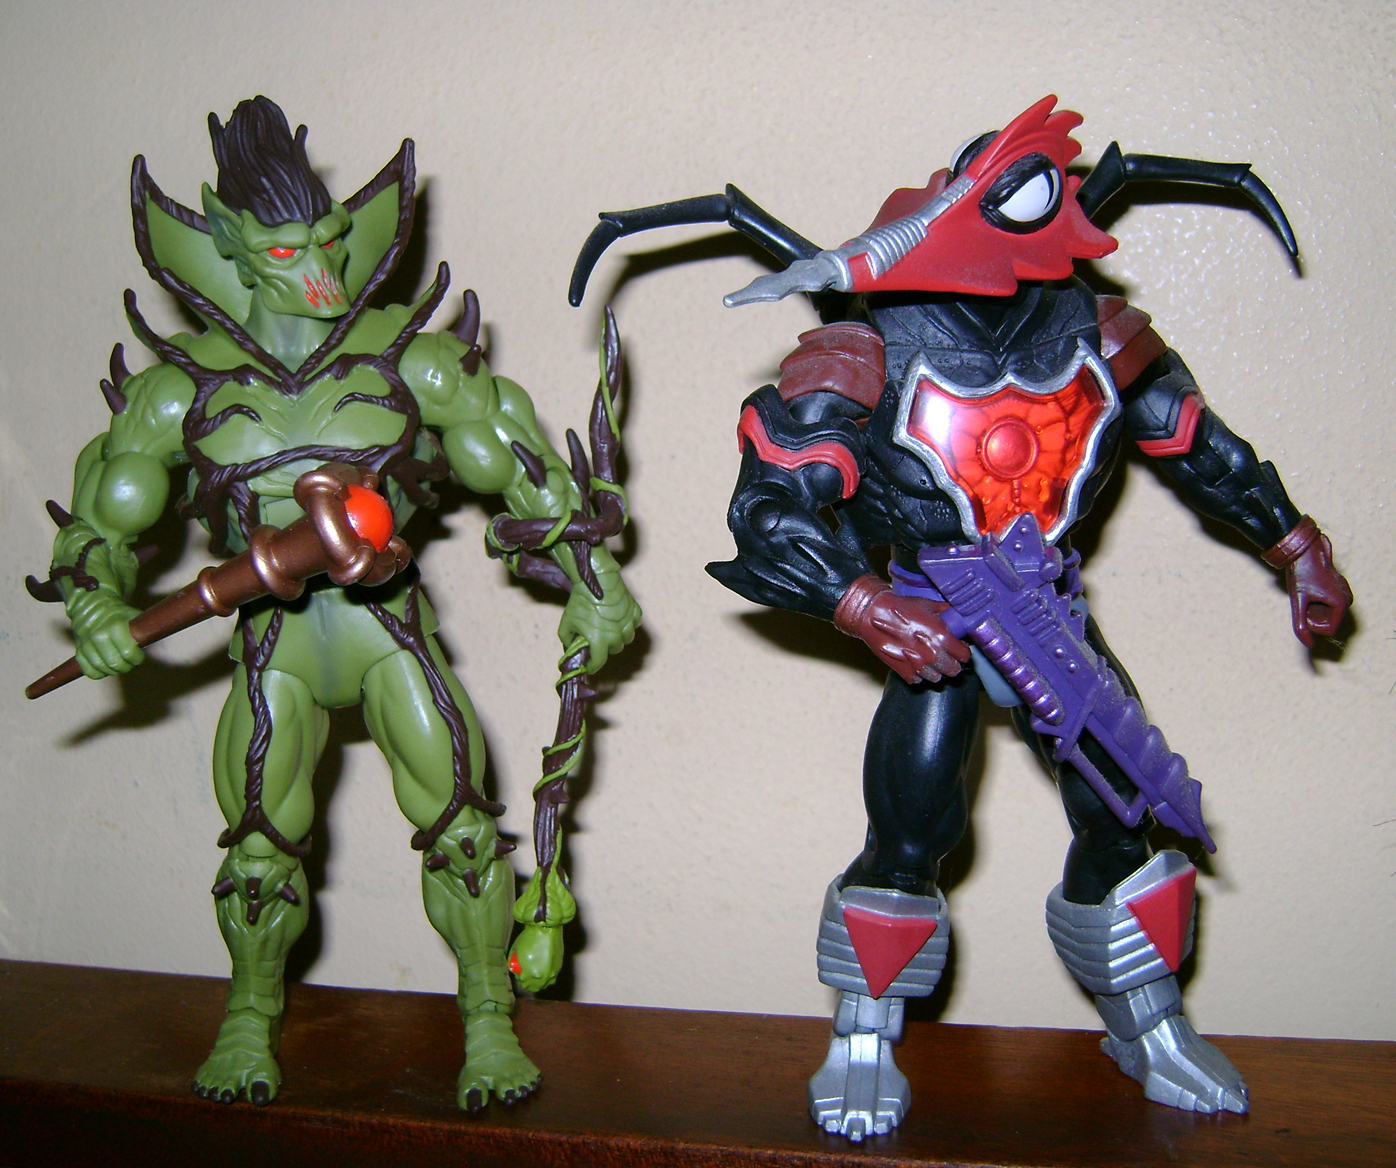 Aug 20 MOTUC 2015 And 200X Special Subscription  Aug: Buzz Saw Hordak, Evil Seed and Heads of Eternia!